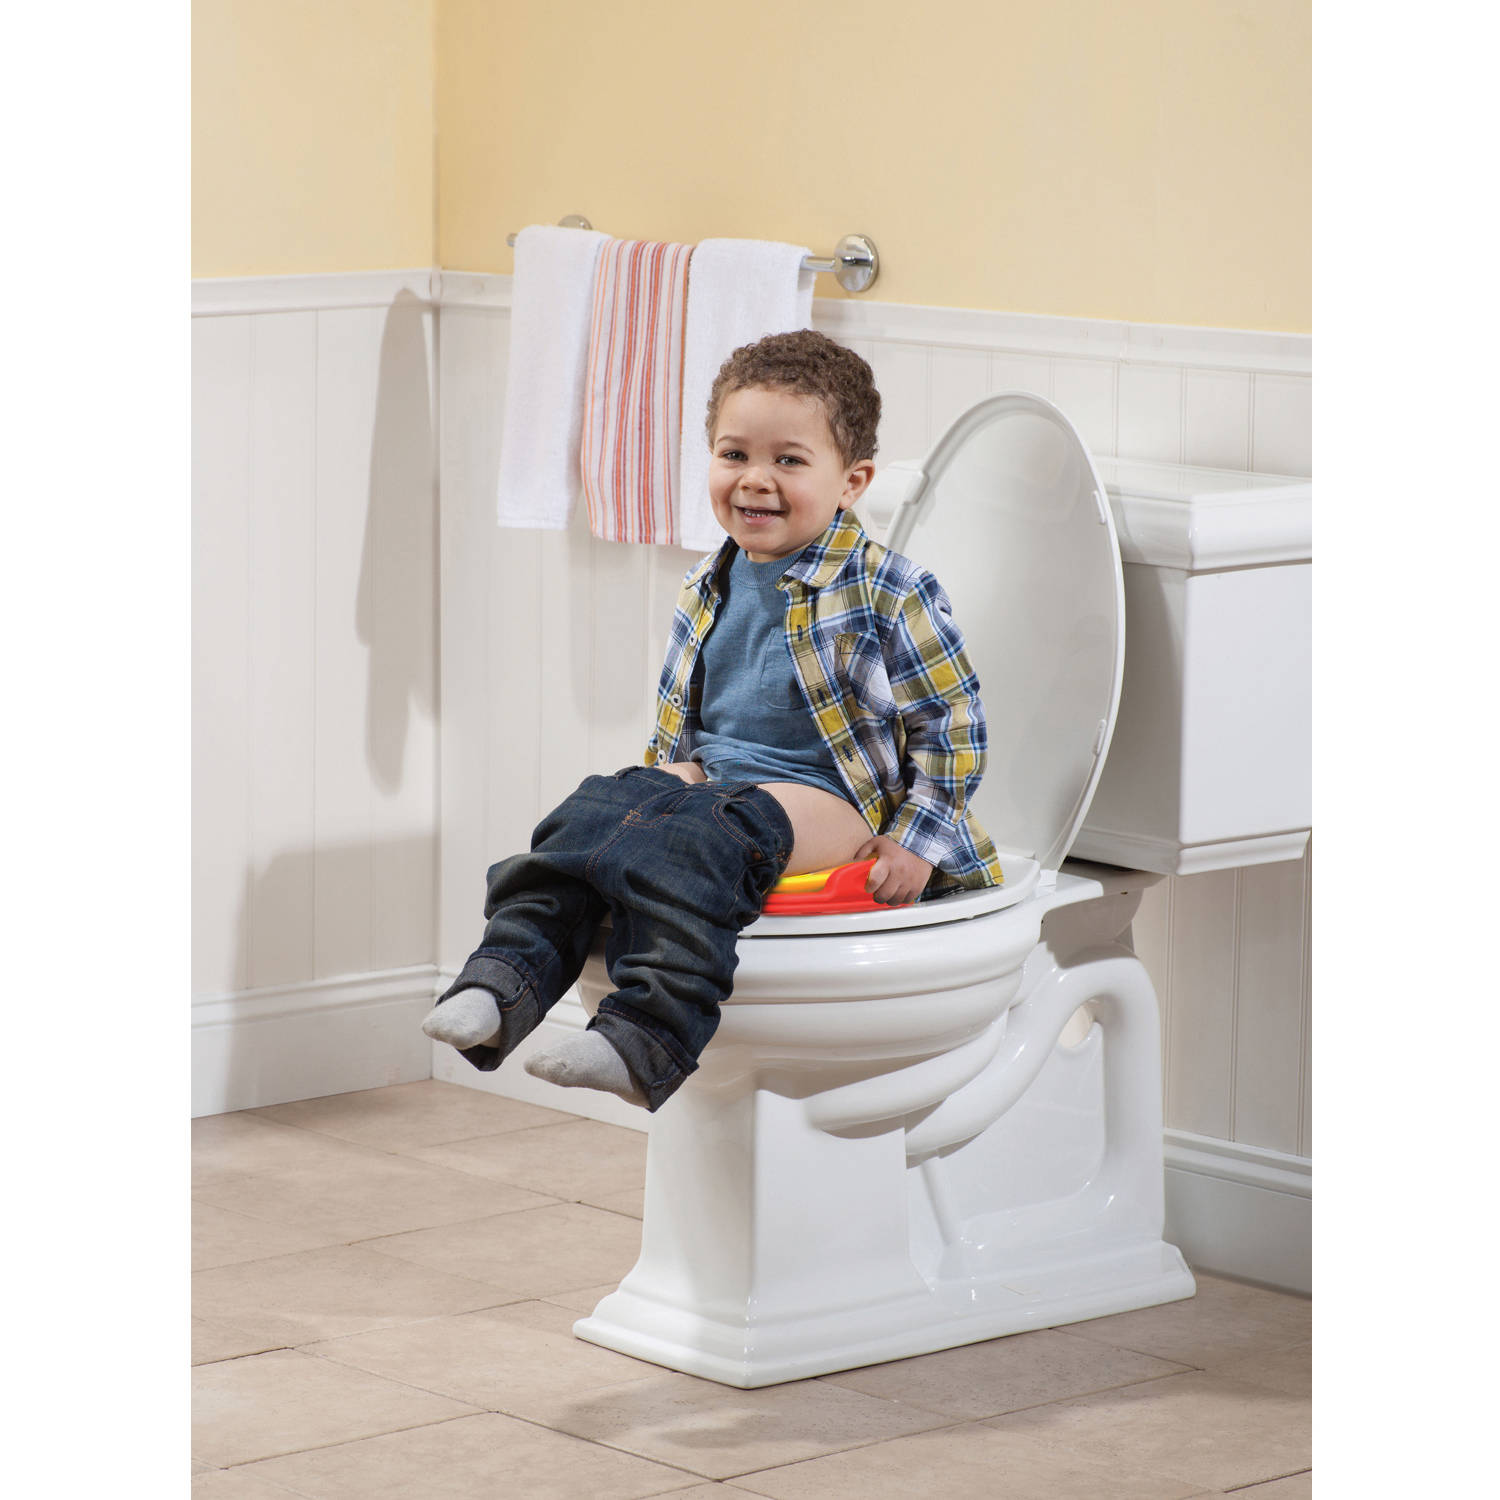 Disney Mickey Mouse 3-in-1 Potty Training Toilet Toddler Toilet Training Set u0026&; Step Stool - Walmart.com  sc 1 st  Walmart & Disney Mickey Mouse 3-in-1 Potty Training Toilet Toddler Toilet ...